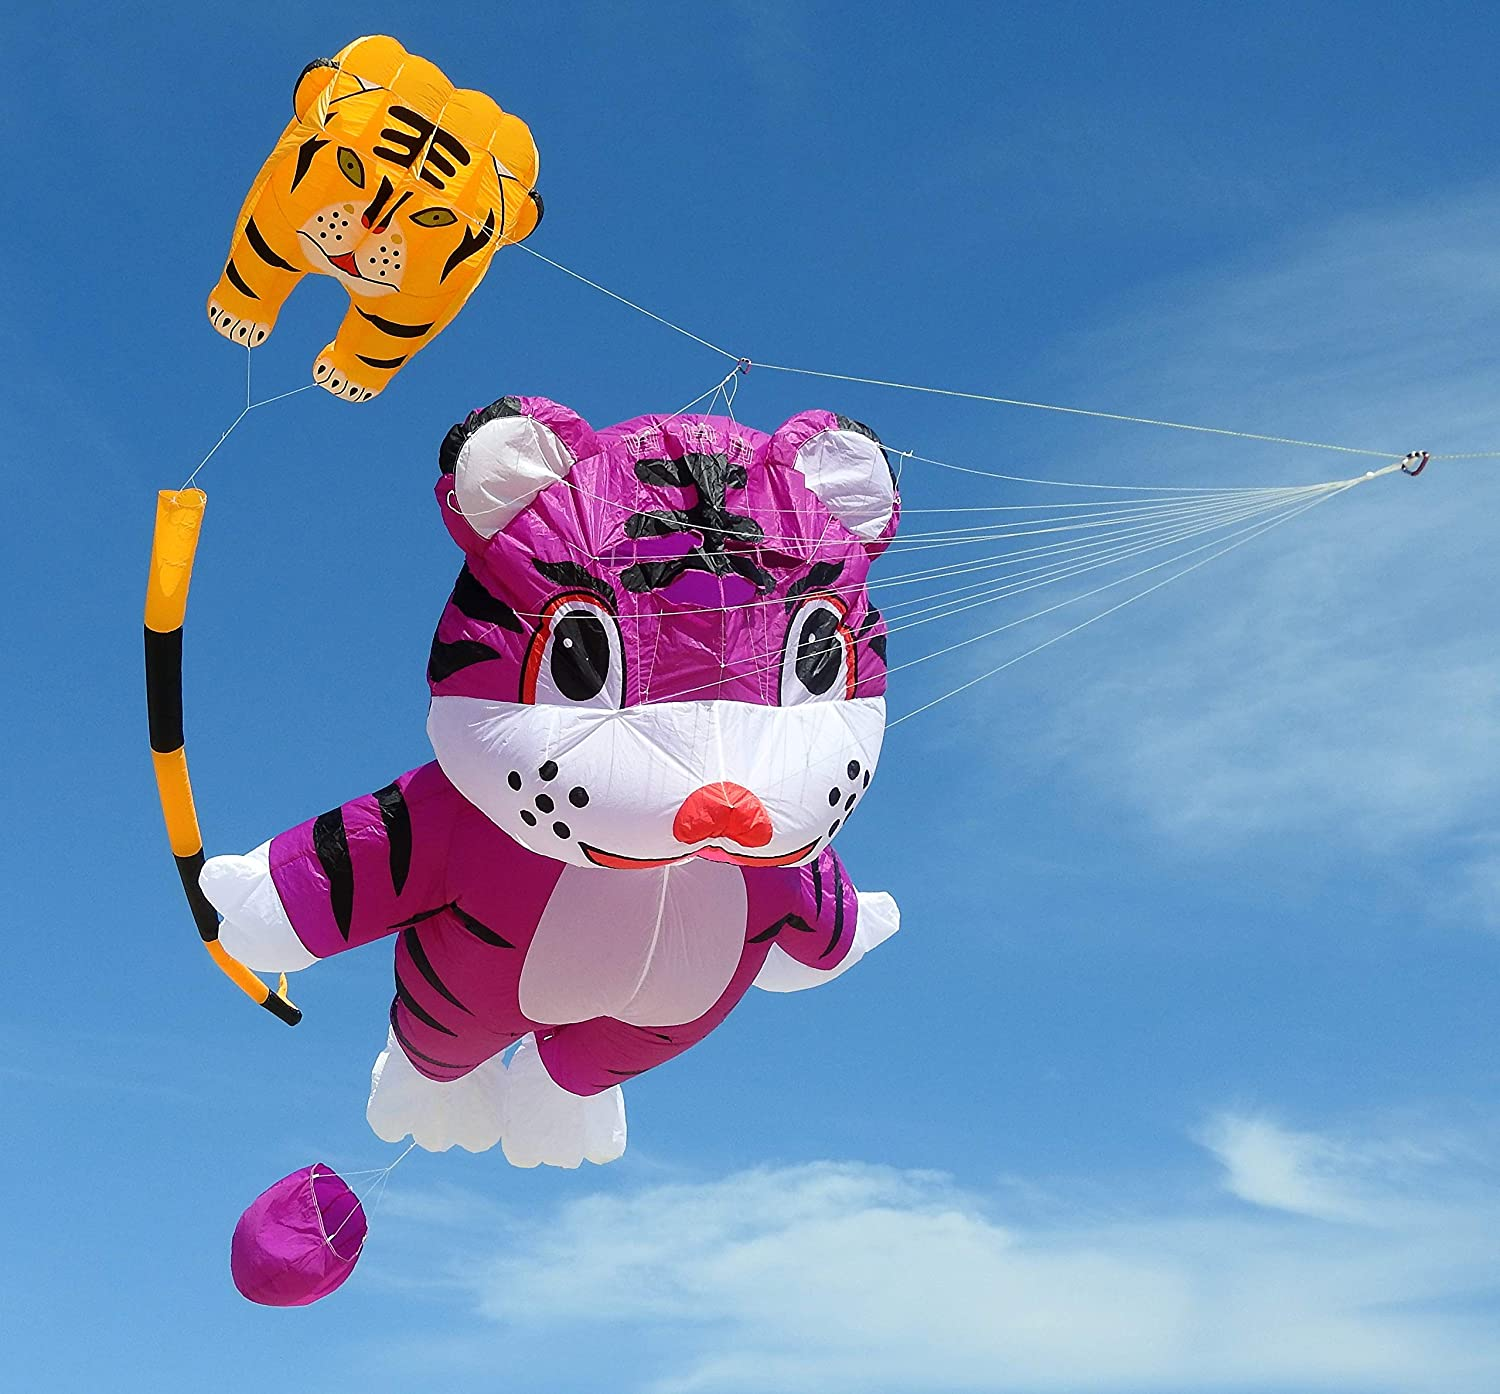 Soft Nylon Material Parafoil Kites 244/×39 inch Kite Easy to Fly with 195ft Kite Braided String and Backpack Perfect 3D Kite for The Beach. Fullfar Lion Large Kite for Adults